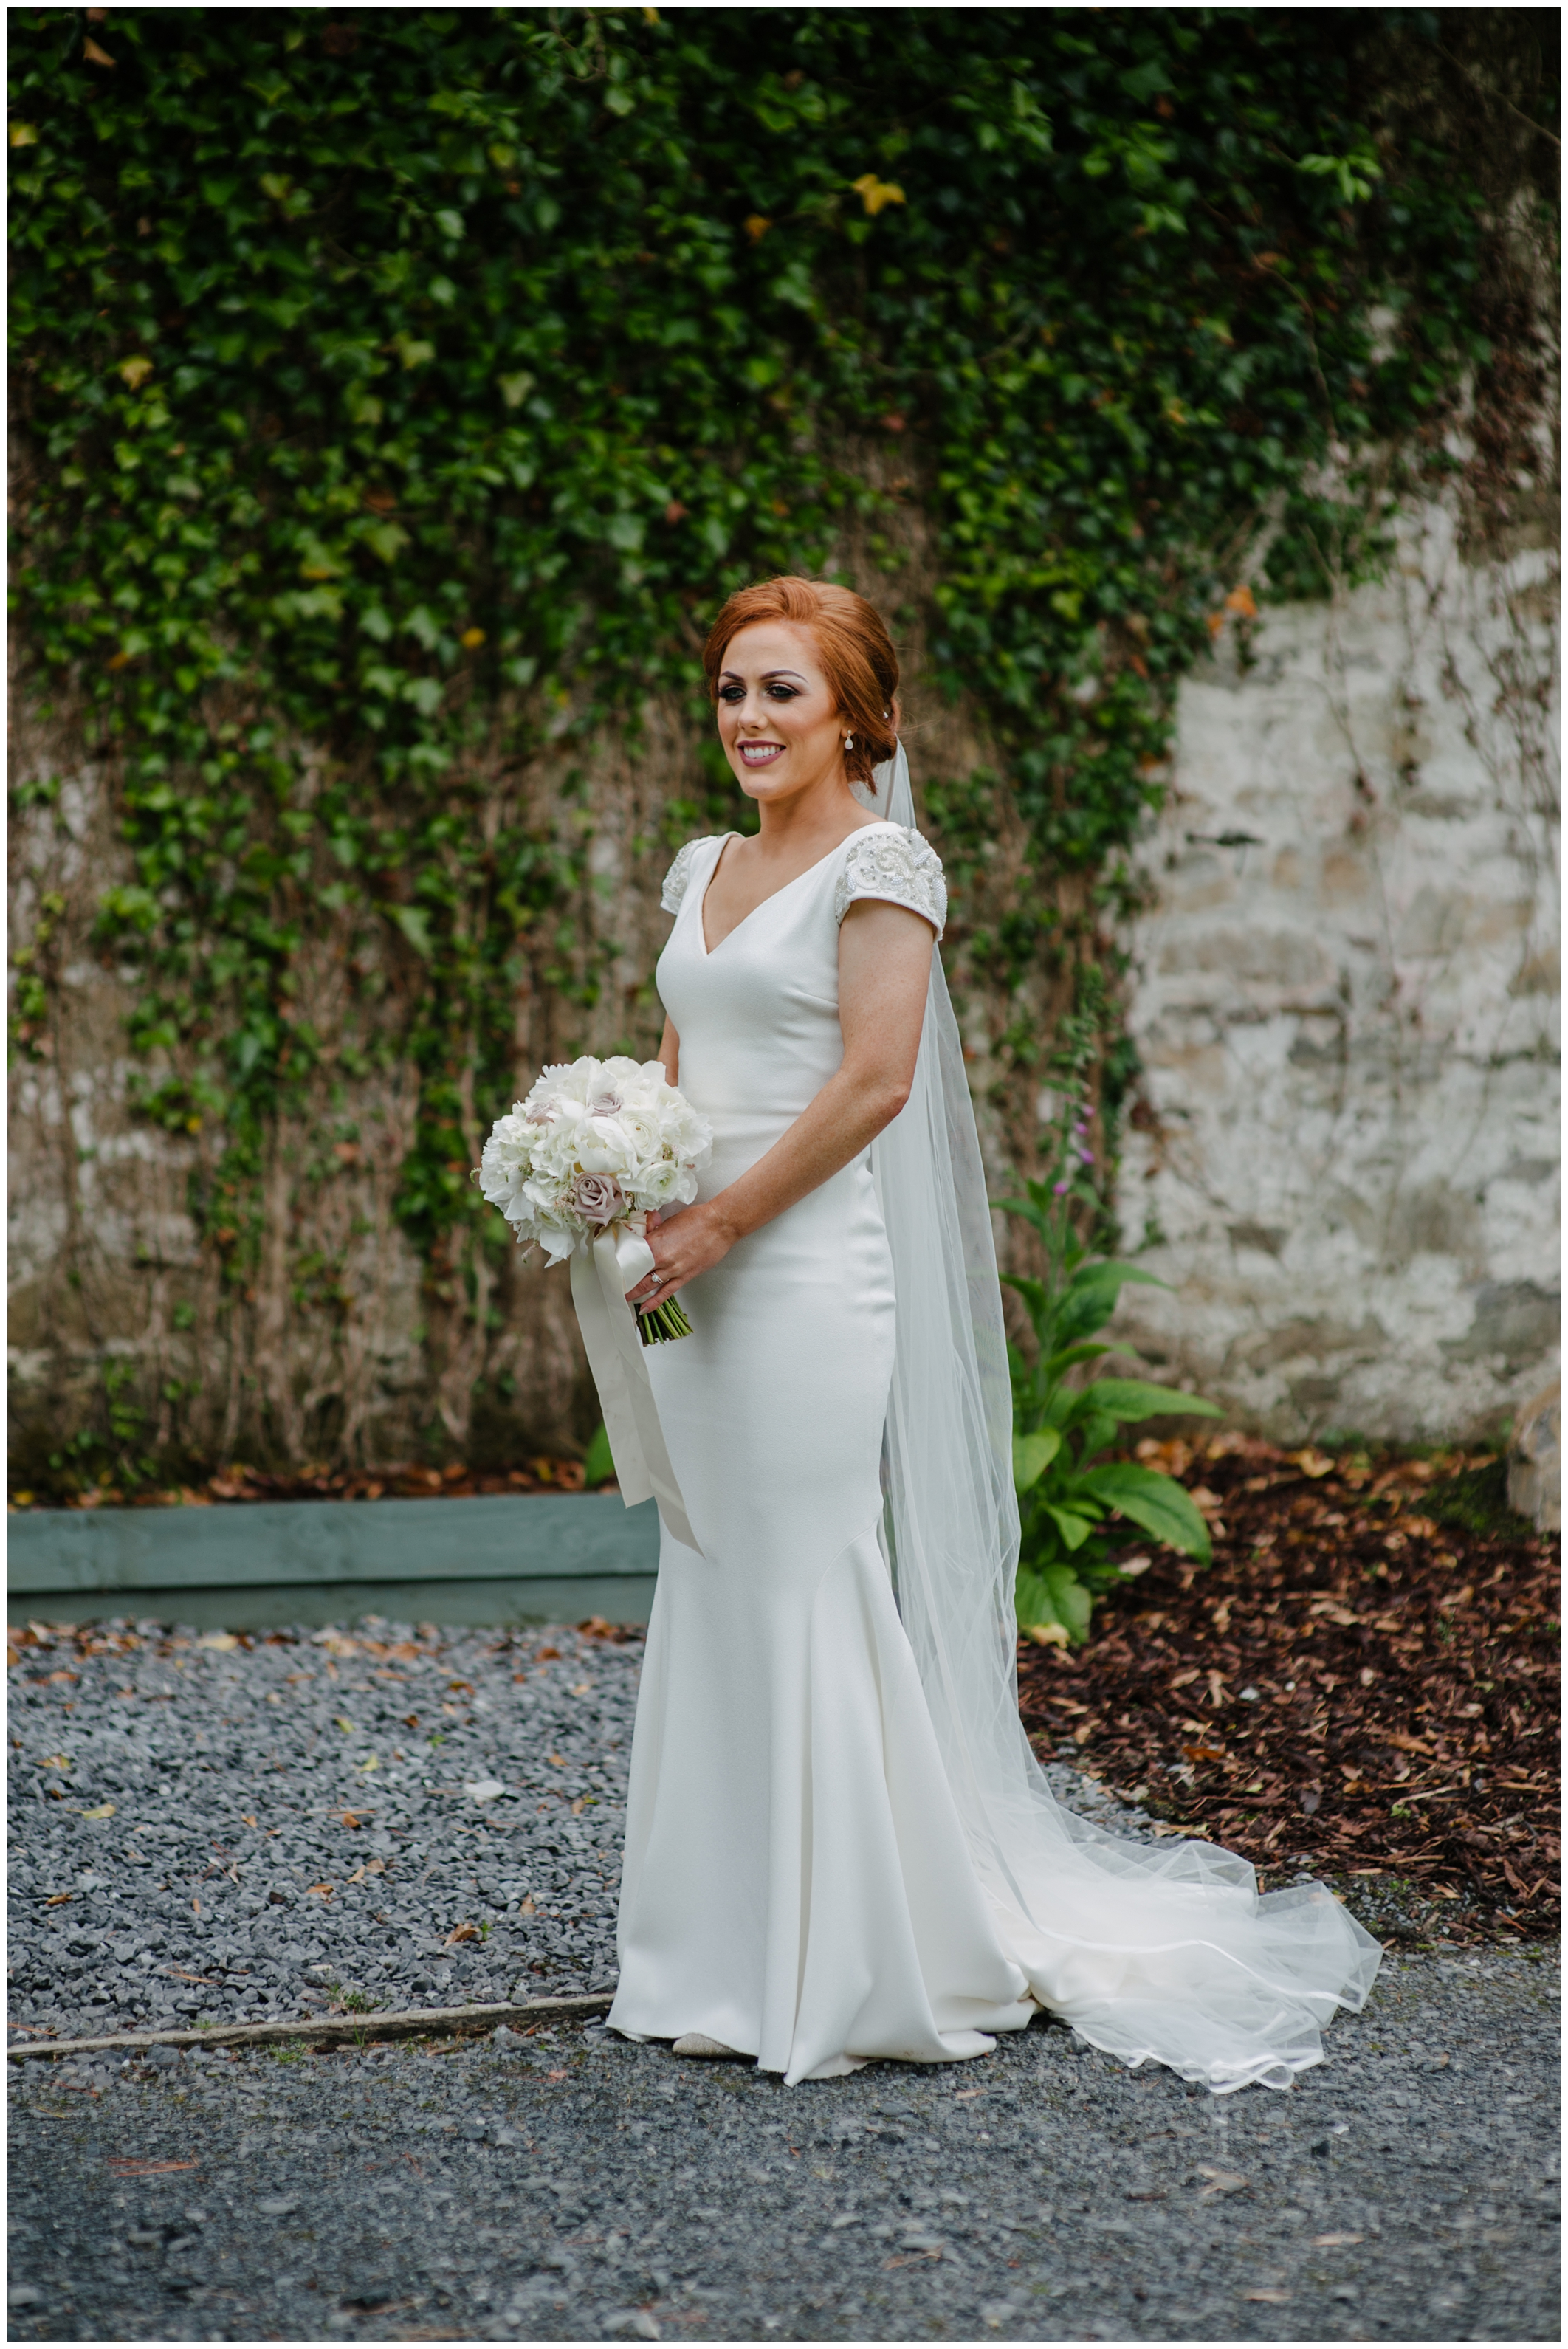 sinead_emmet_farnham_estate_wedding_jude_browne_photography_0107.jpg